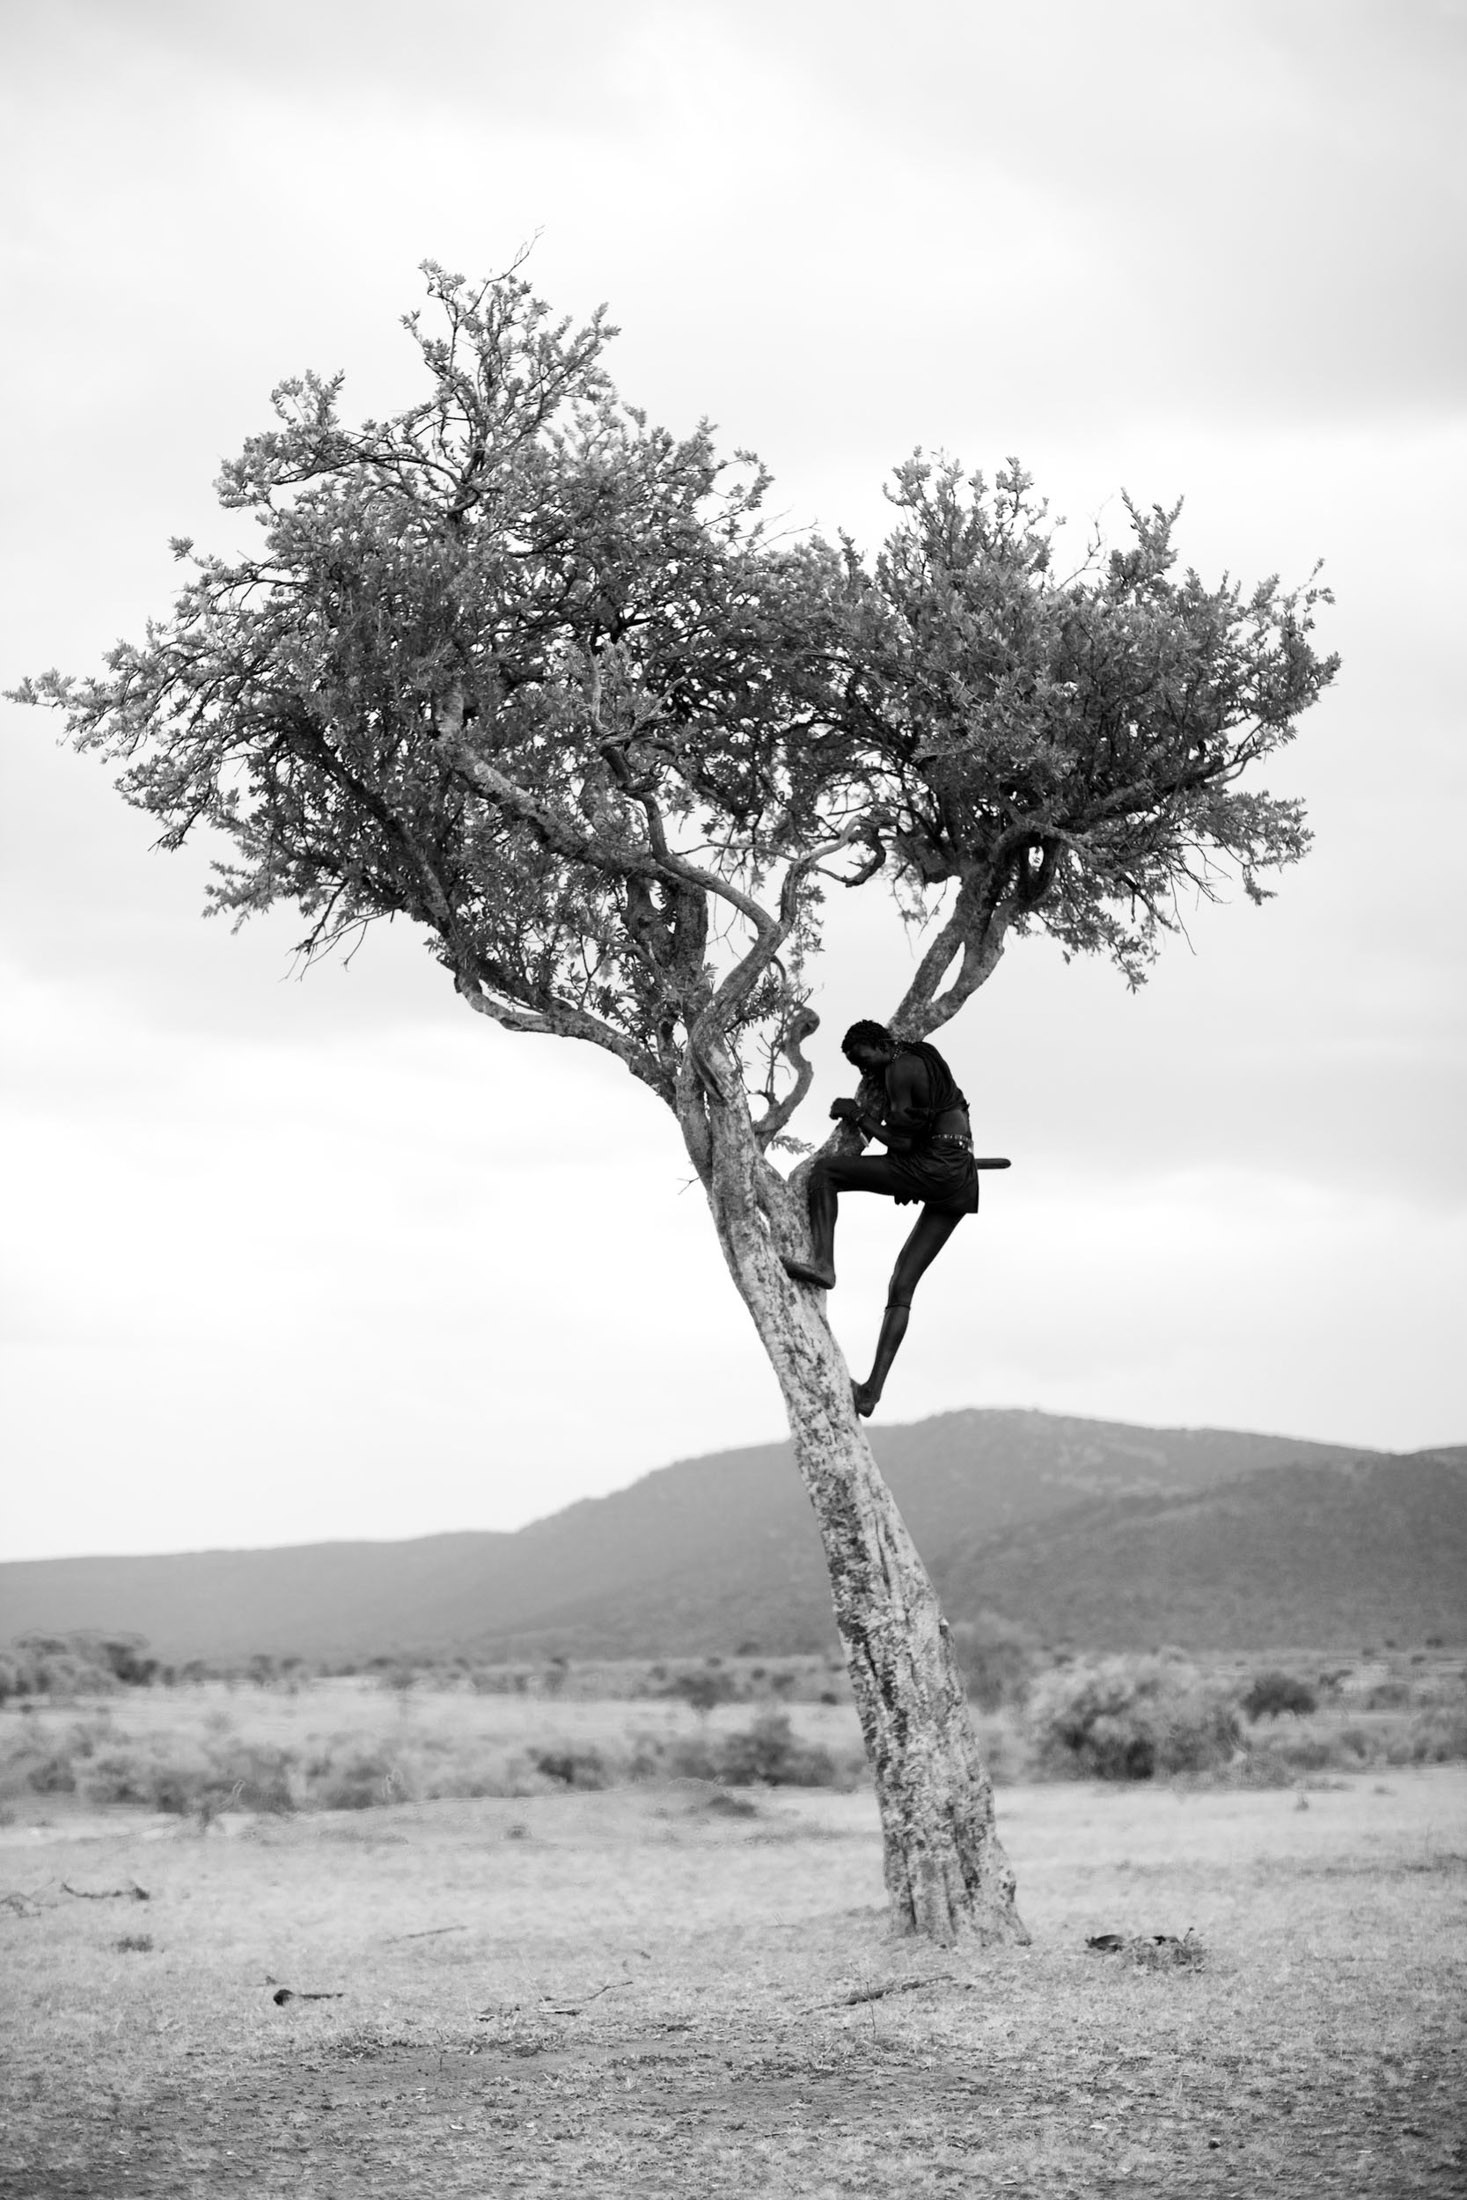 A warrior climbs an acacia tree after spear-throwing practice goes awry.